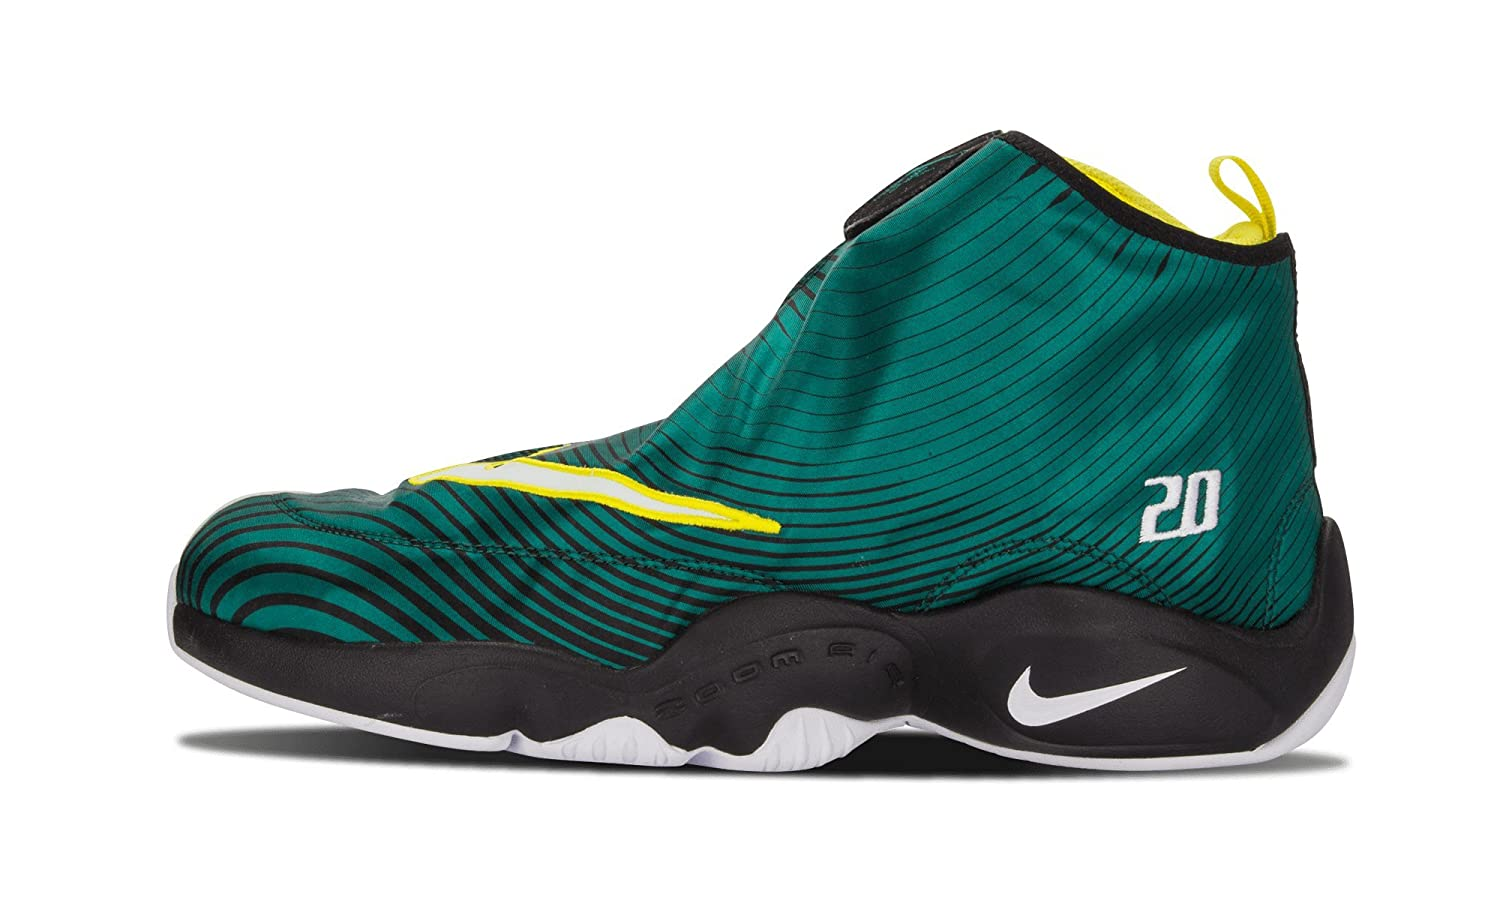 new style 52695 34d18 Amazon.com   Nike Mens Air Zoom Flight The Glove QS Gary Payton Fabric  Basketball Shoes   Shoes